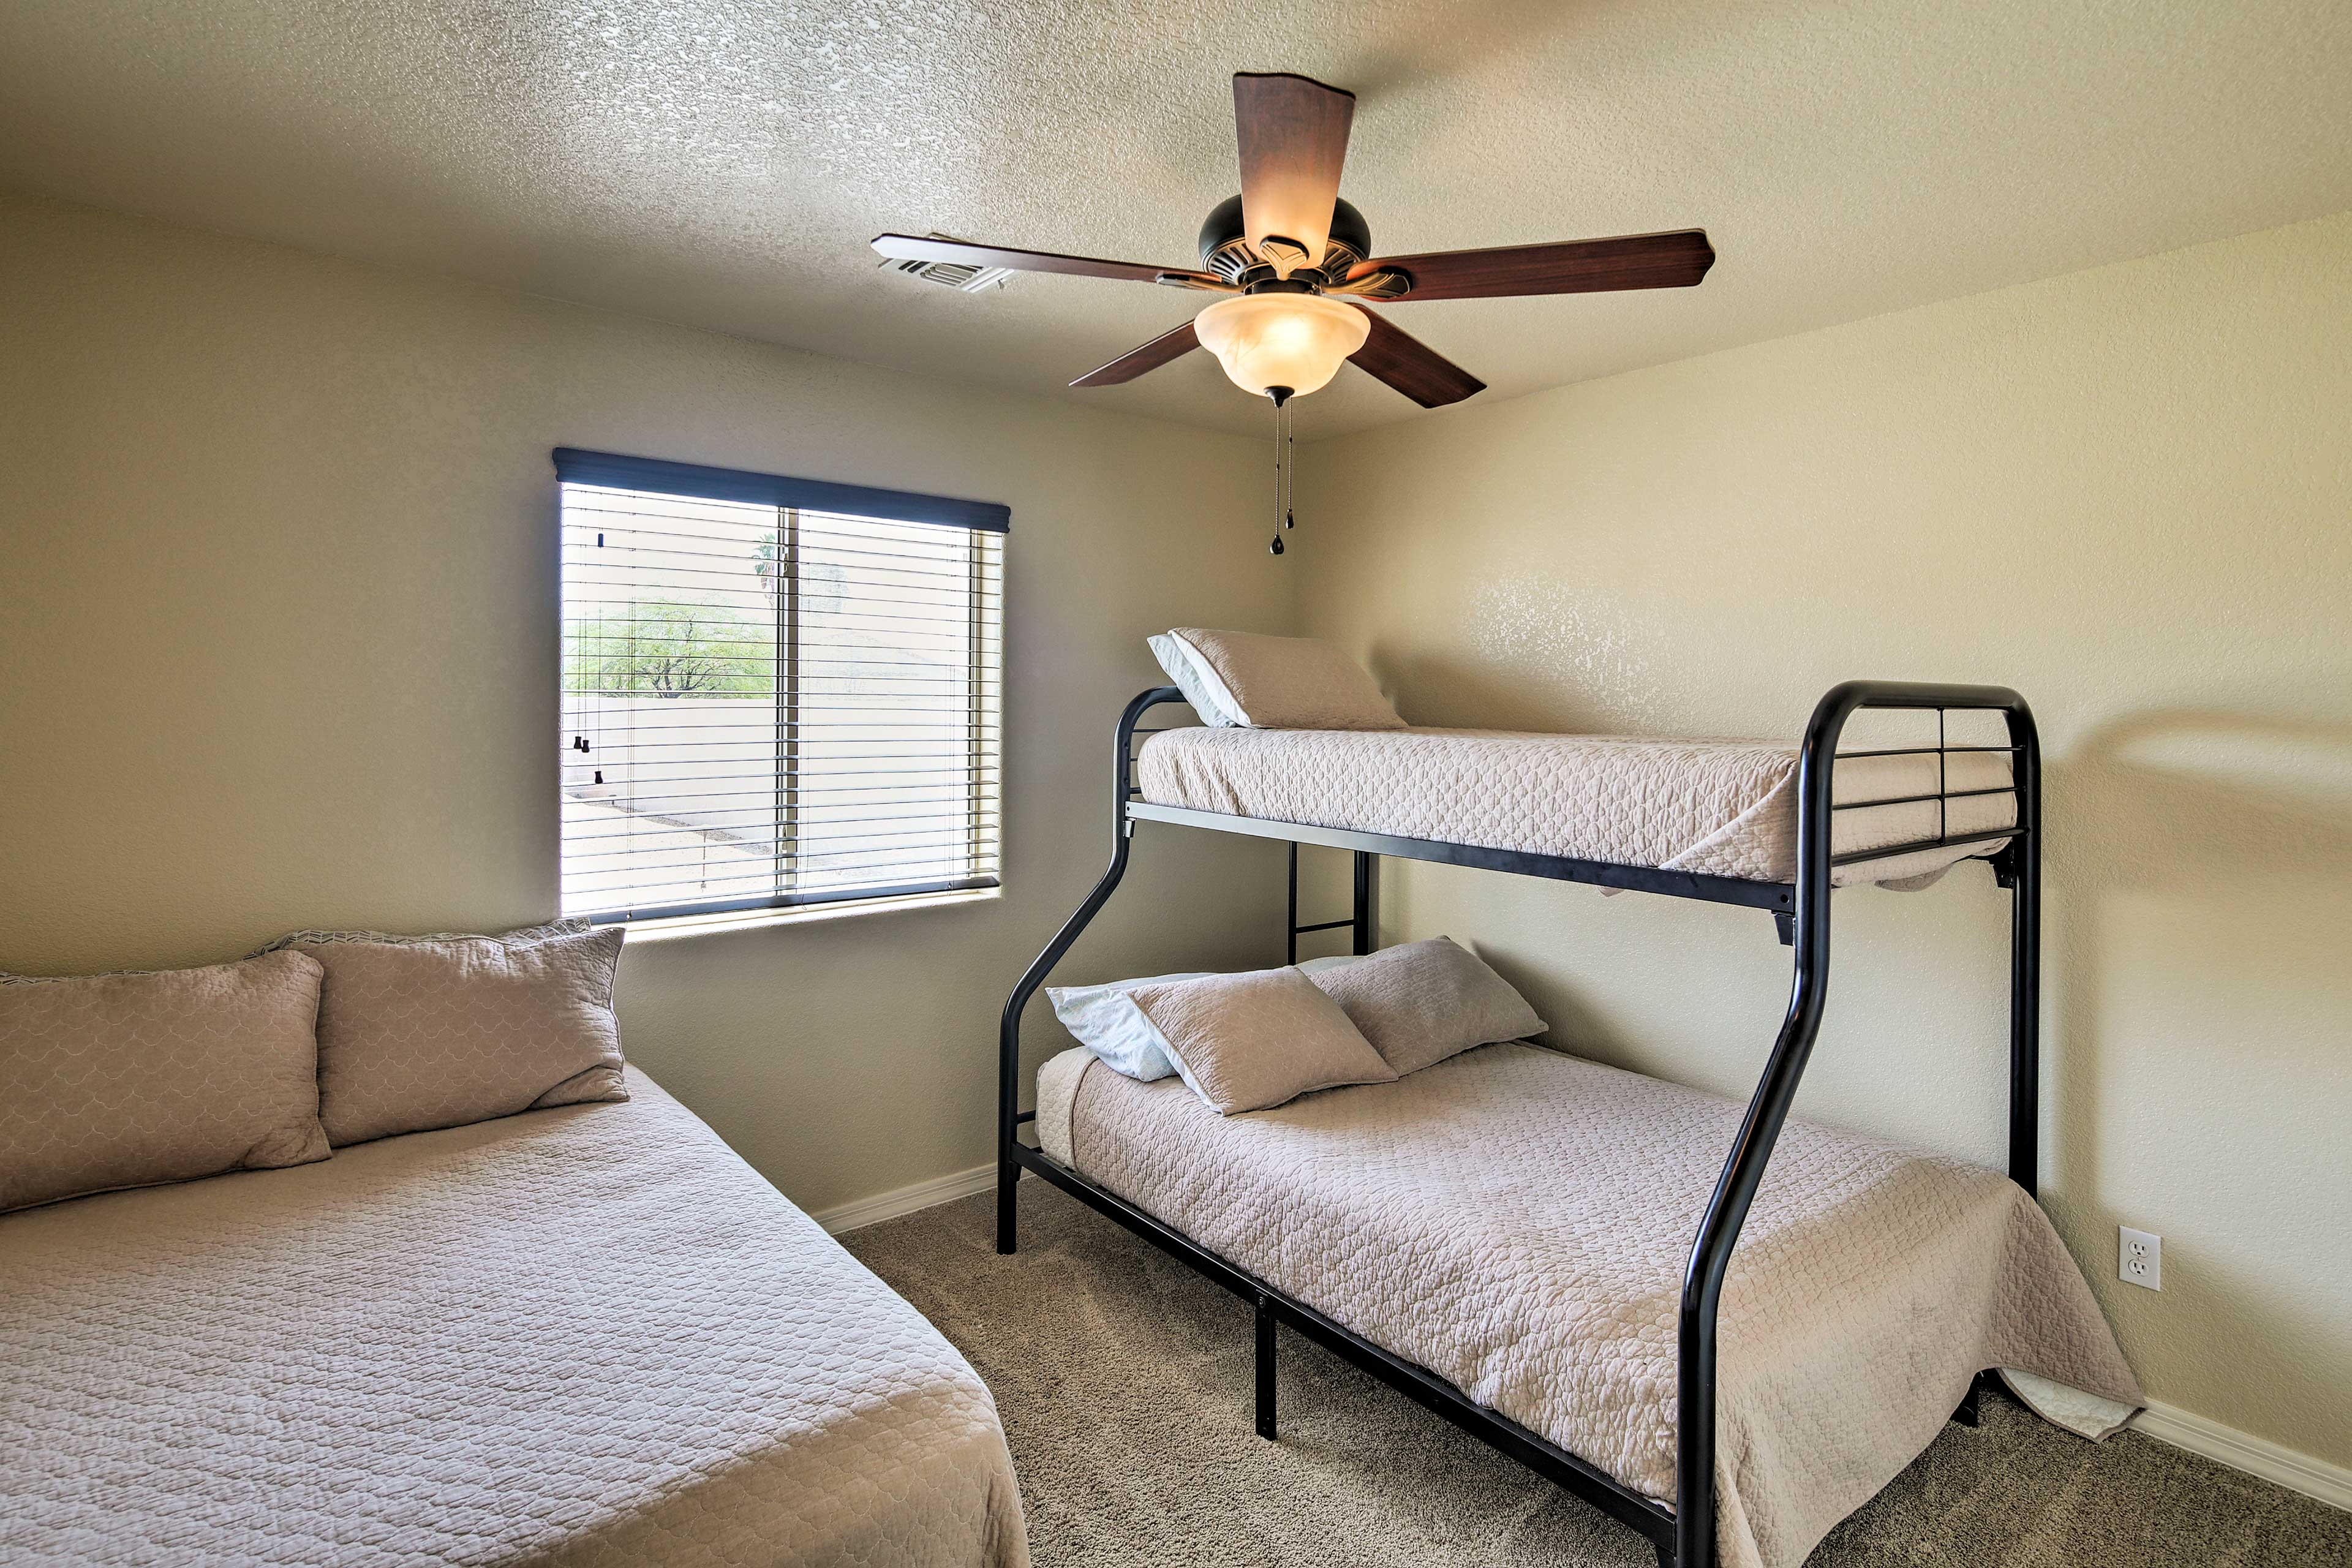 The 2nd bedroom features a twin-over-full bunk bed and full-sized bed.